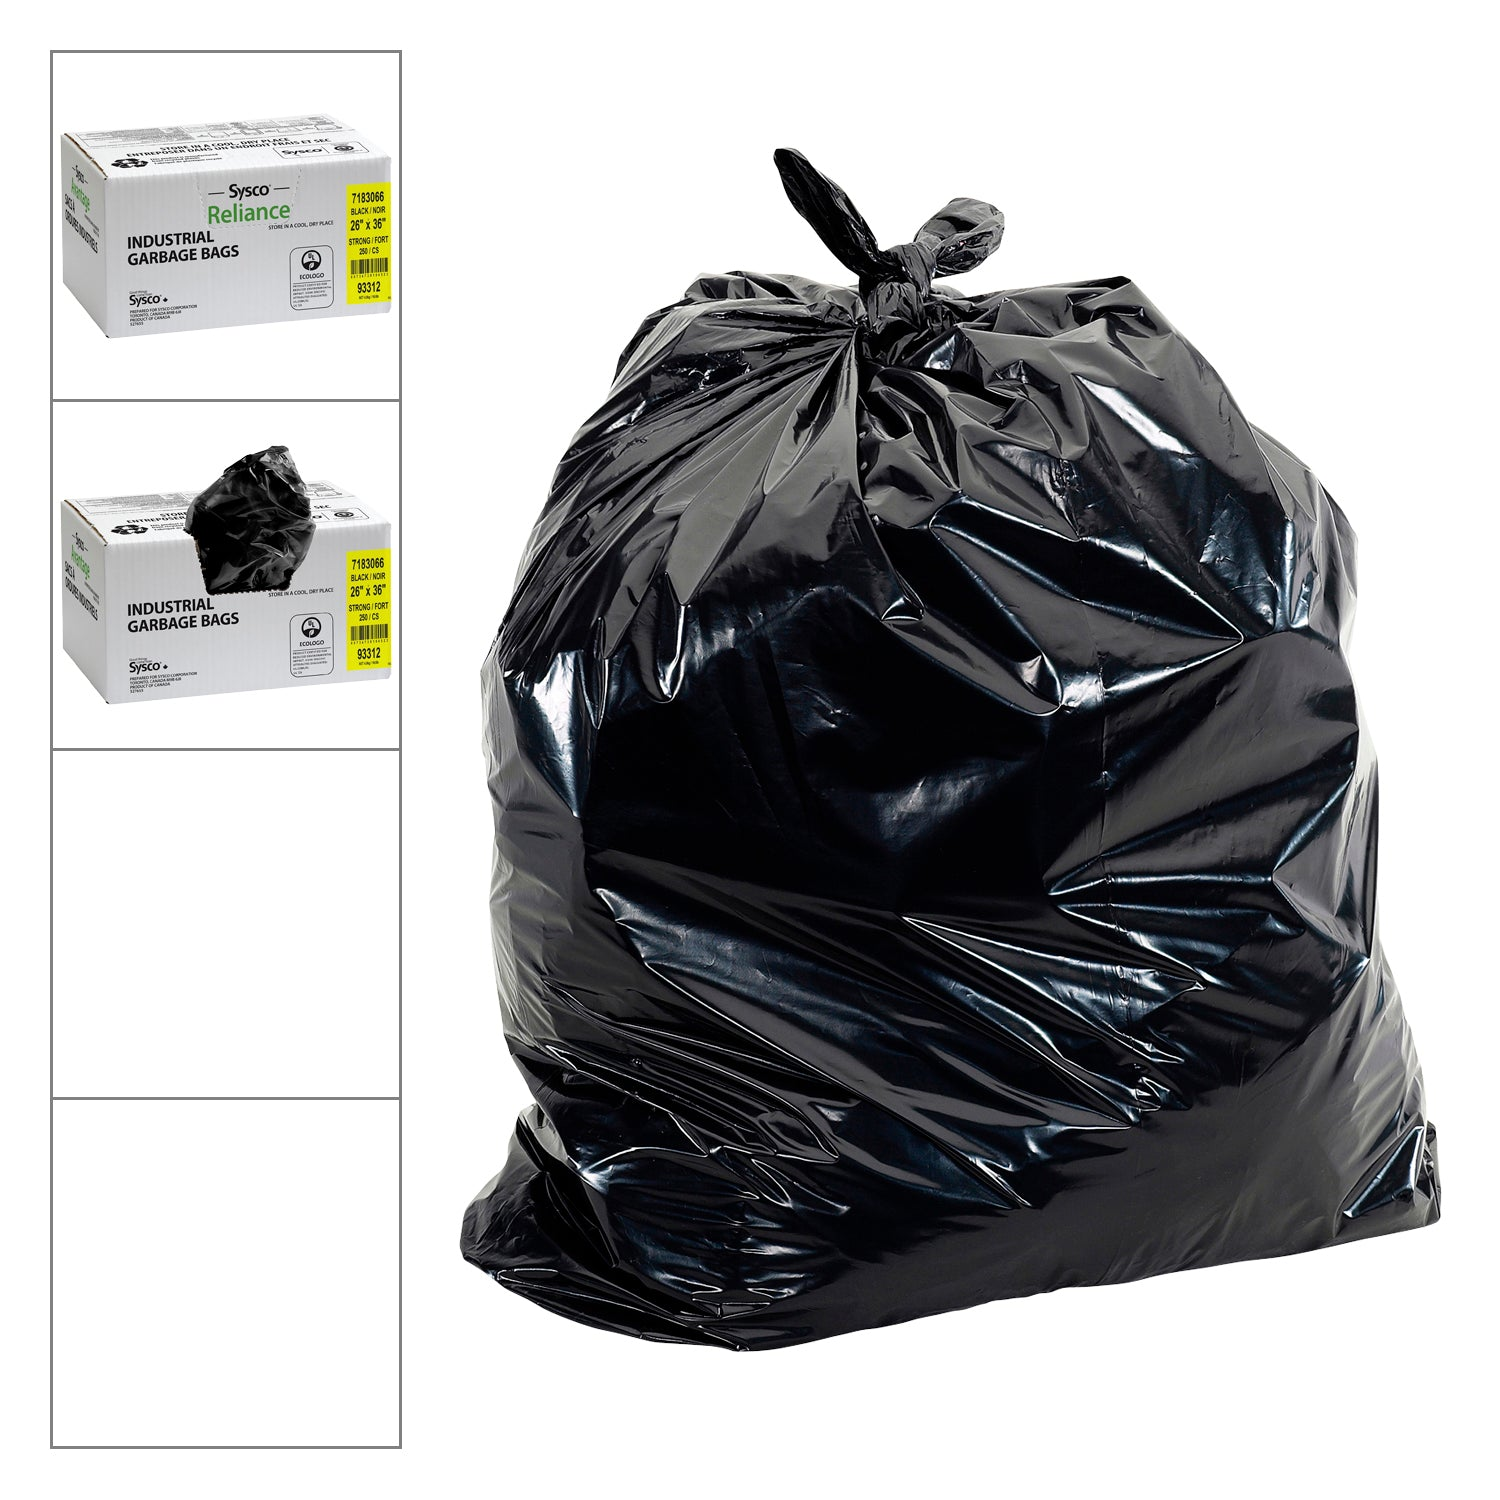 "Sysco Reliance Black Garbage Bags 26""x36"" - 250 Pack [$0.14/bag]"